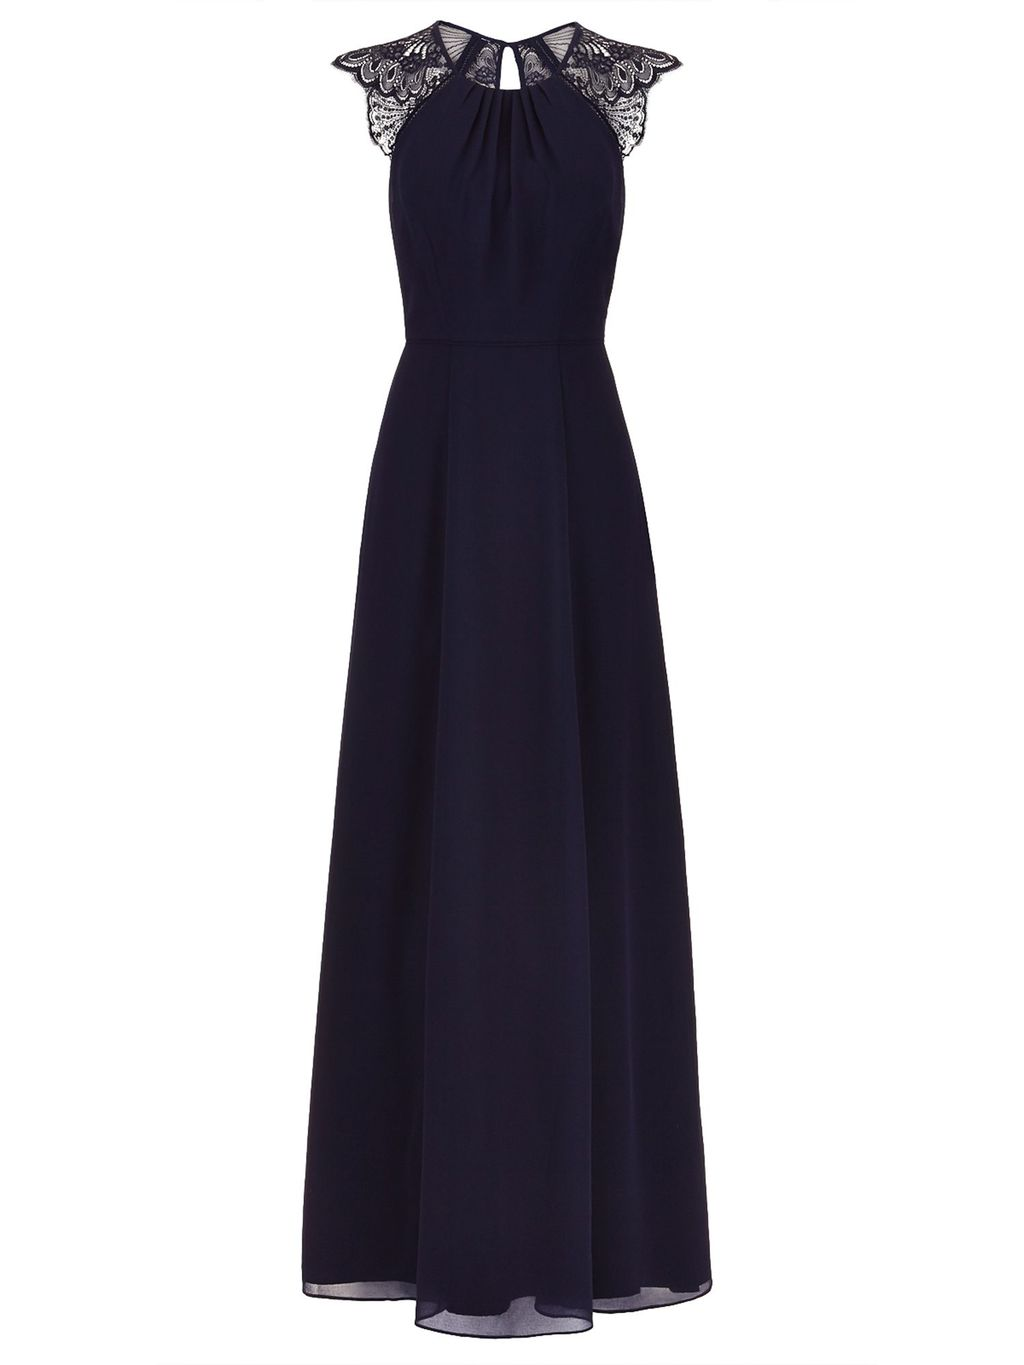 Bluebell Maxi Dress, Navy - sleeve style: capped; pattern: plain; style: maxi dress; length: ankle length; predominant colour: navy; occasions: evening; fit: body skimming; fibres: nylon - mix; neckline: crew; sleeve length: short sleeve; texture group: sheer fabrics/chiffon/organza etc.; pattern type: fabric; embellishment: lace; shoulder detail: sheer at shoulder; season: s/s 2016; wardrobe: event